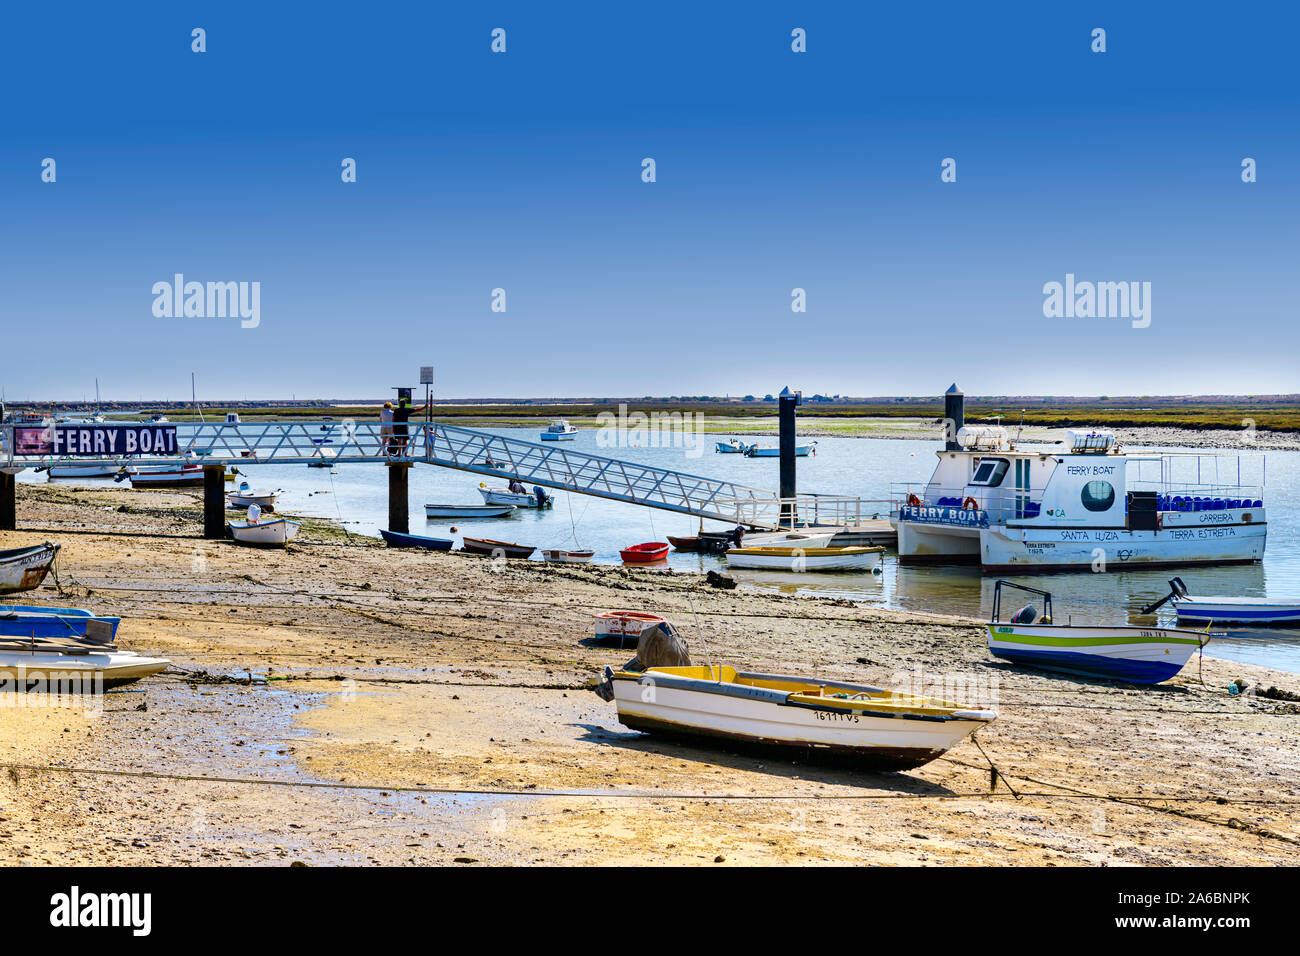 09.16.2019. Algarve, Portugal. The ferry across the Ria Formosa at Santa Luzia Stock Photo